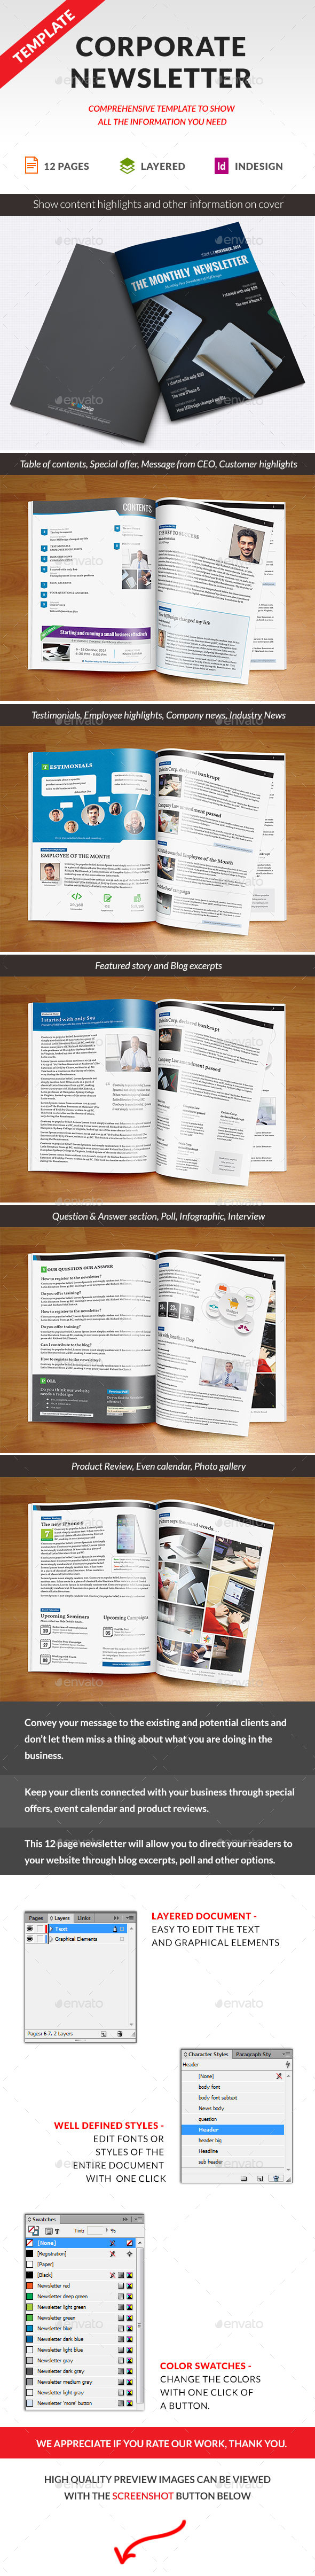 Corporate Newsletter Indesign Template - Newsletters Print Templates